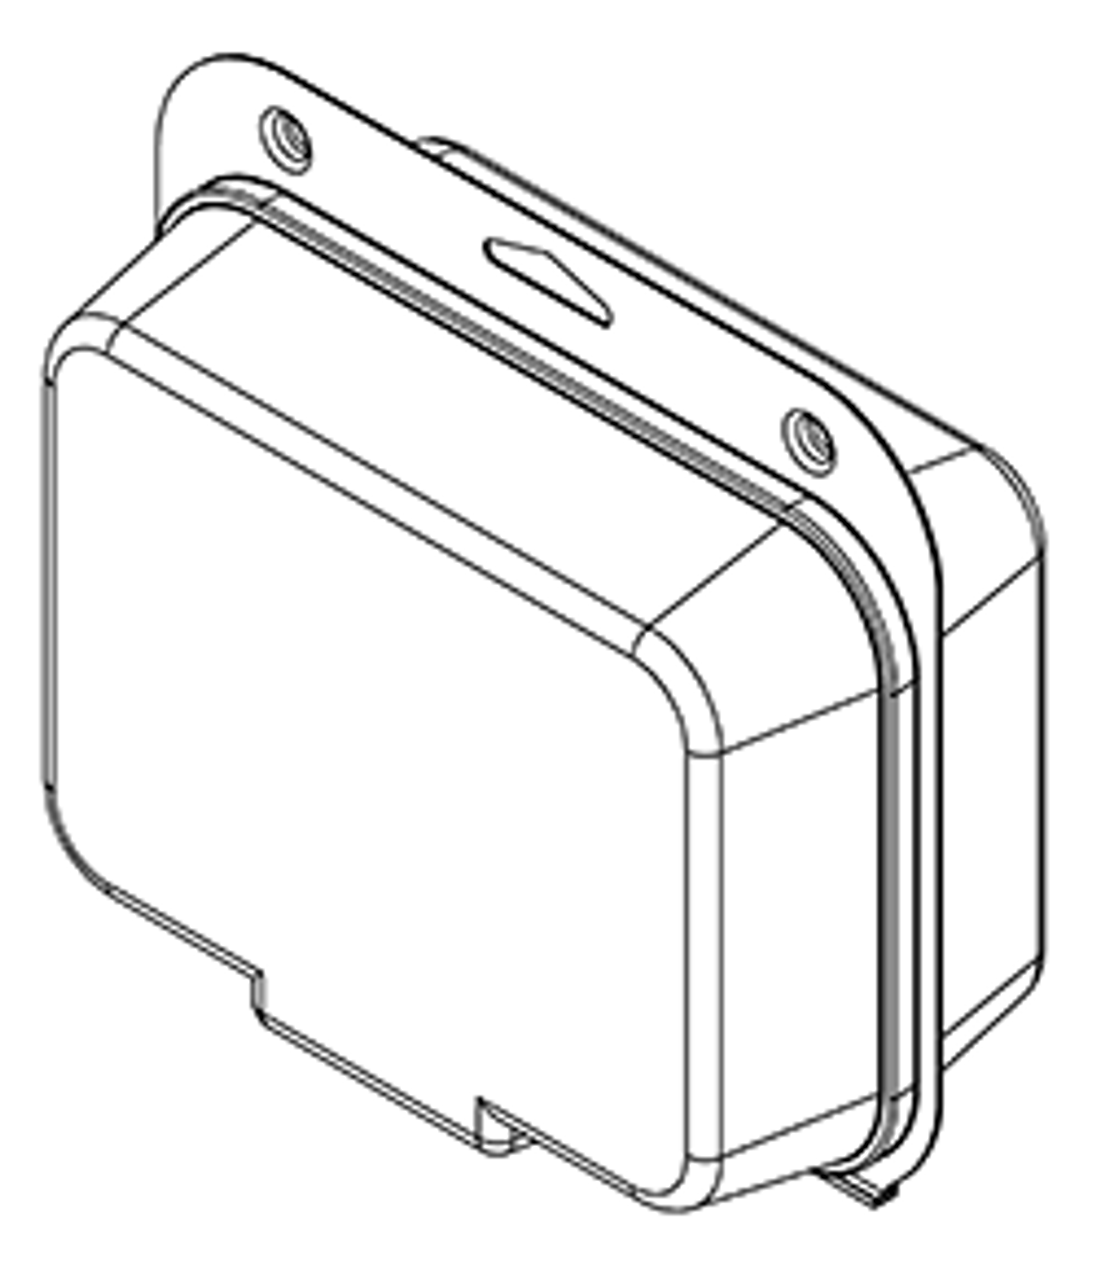 302TF - Stock Clamshell Packaging